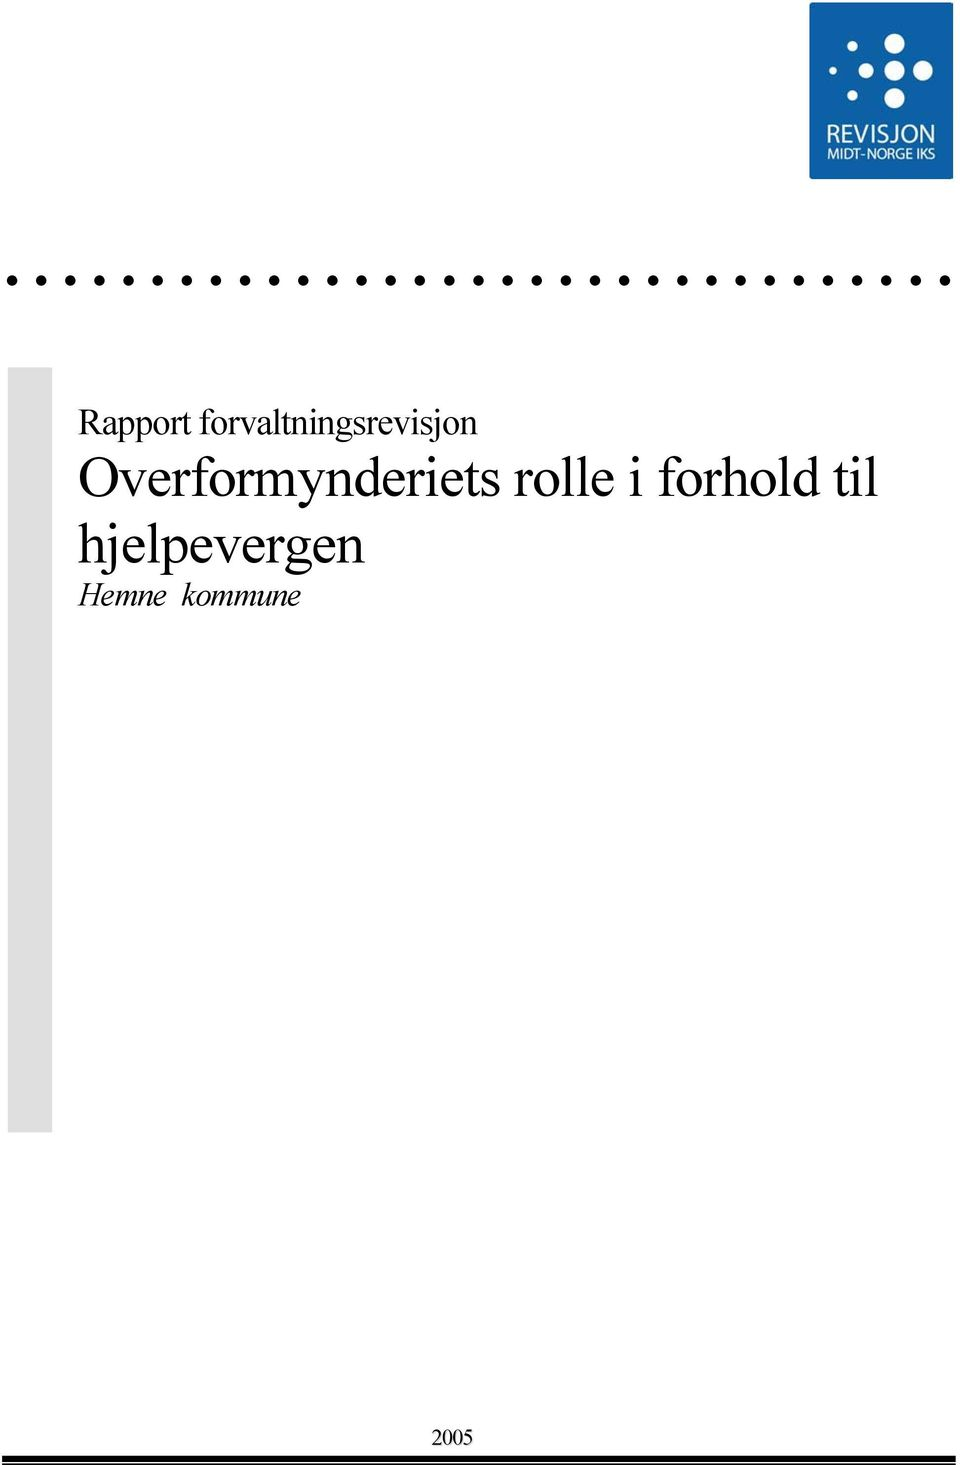 Overformynderiets rolle